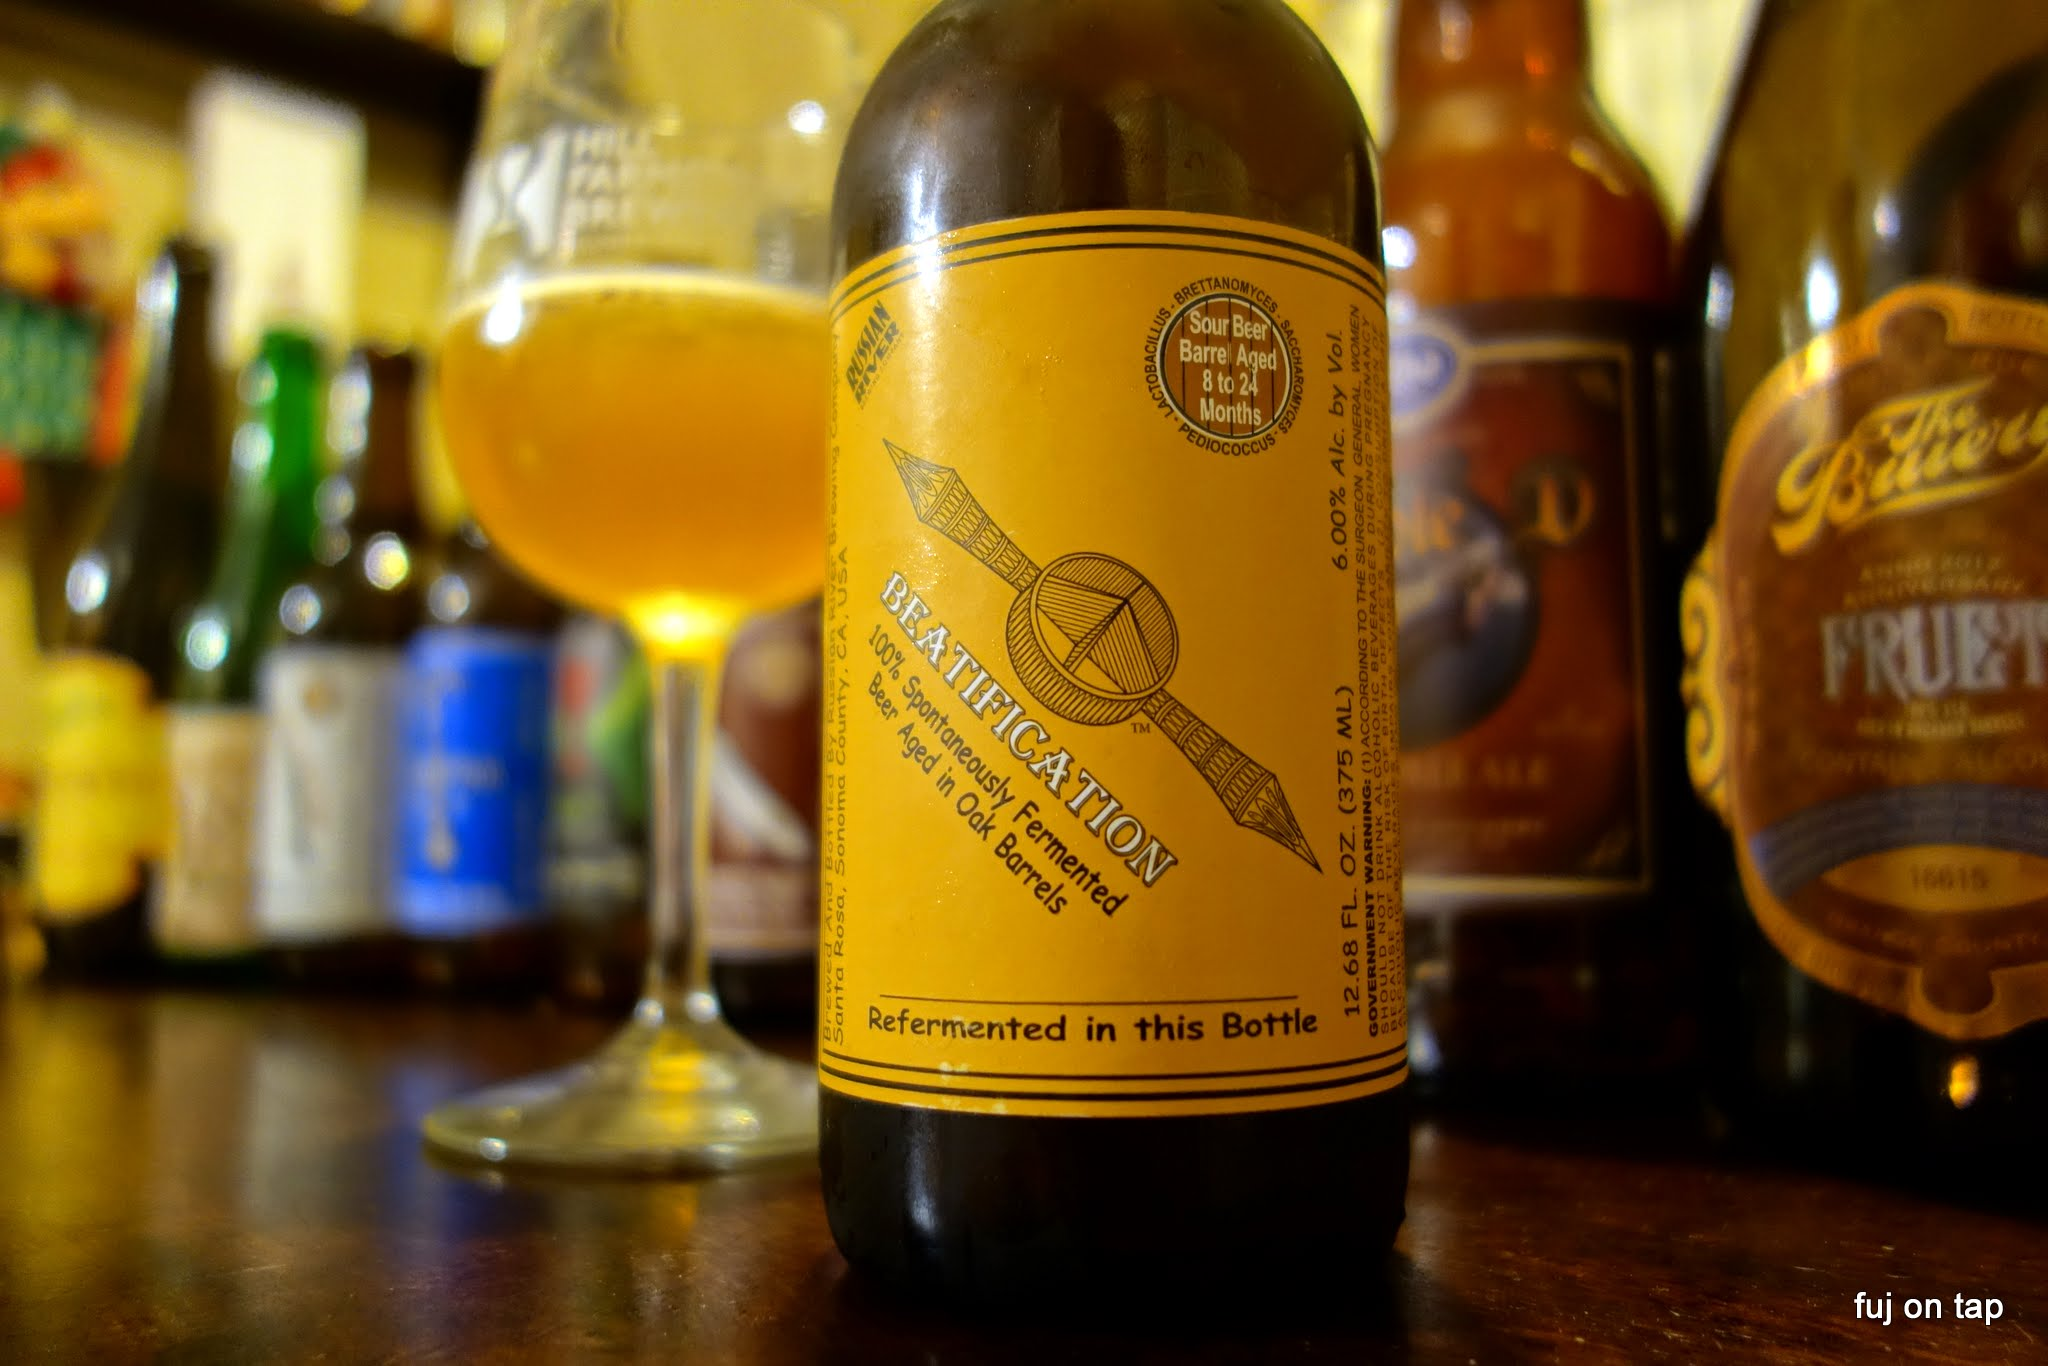 Russian River Beatification Batch 5